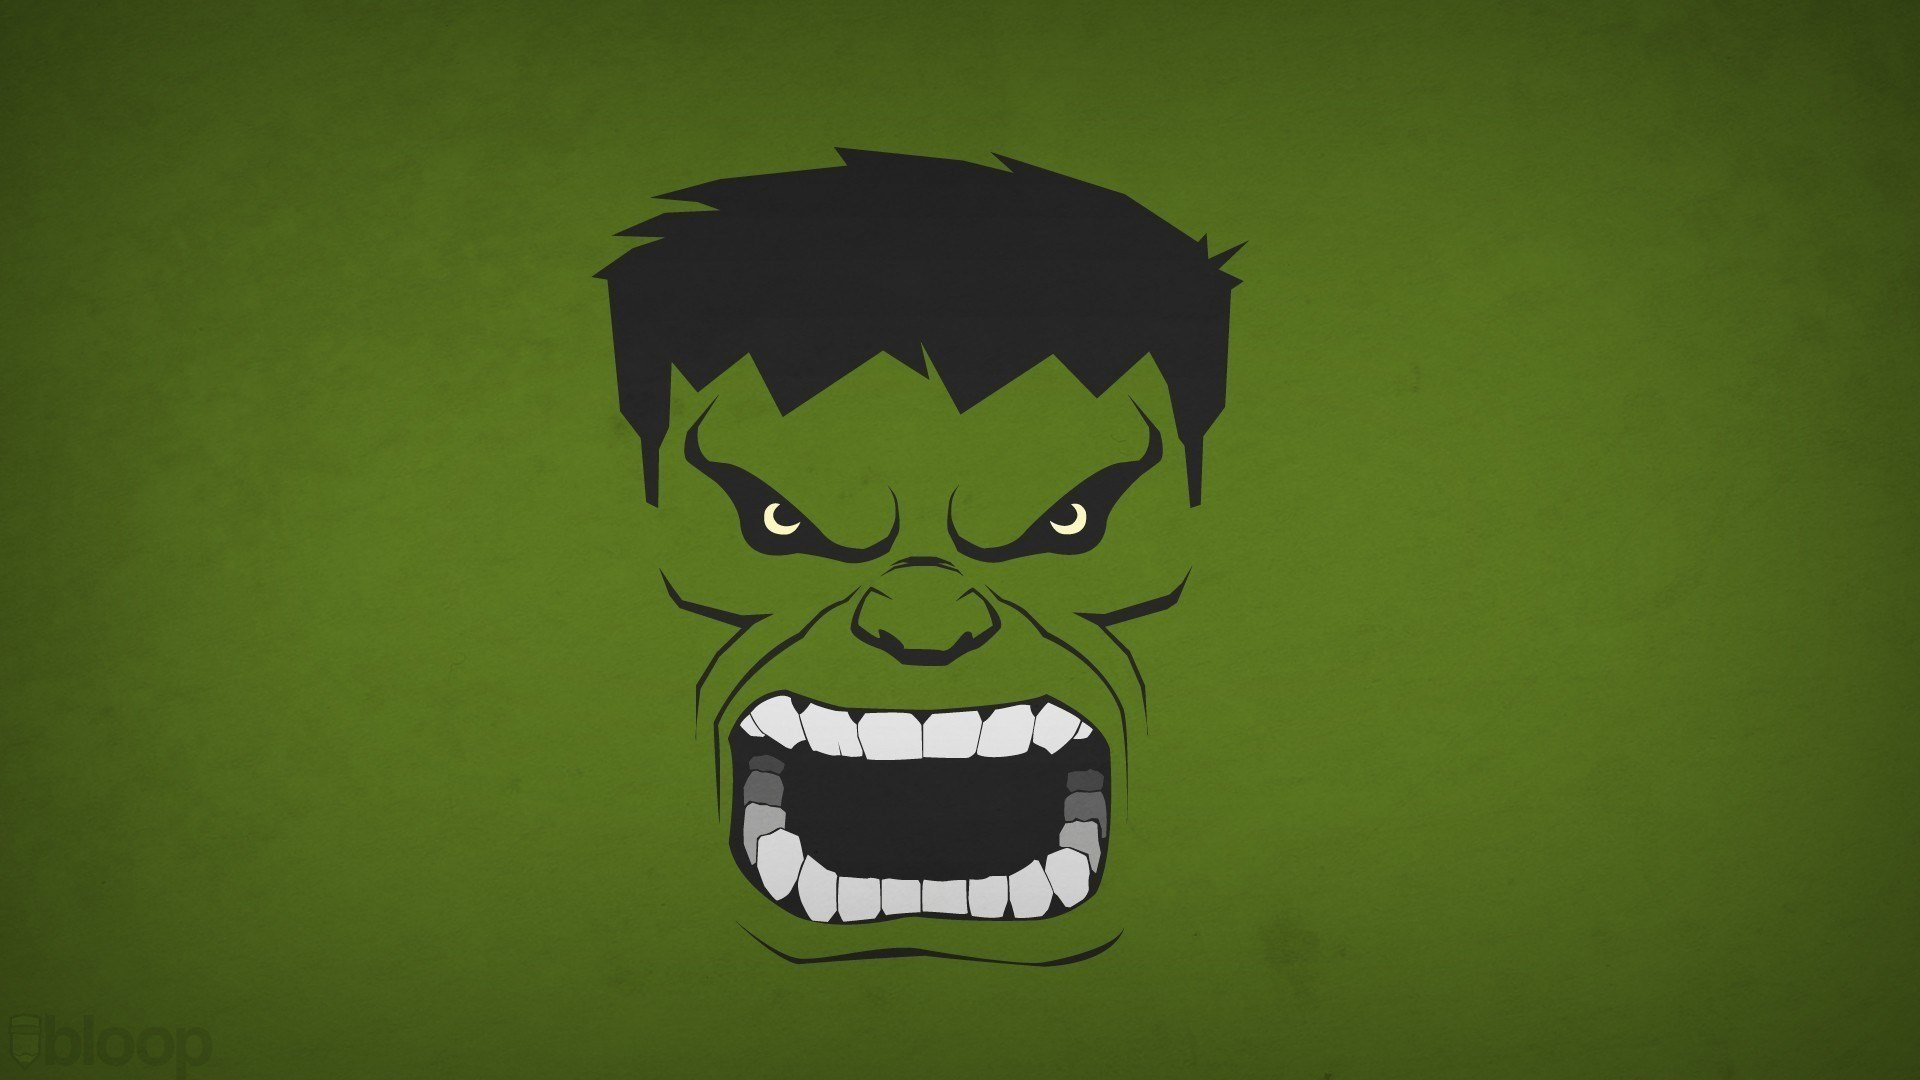 Incredible Hulk wallpaper